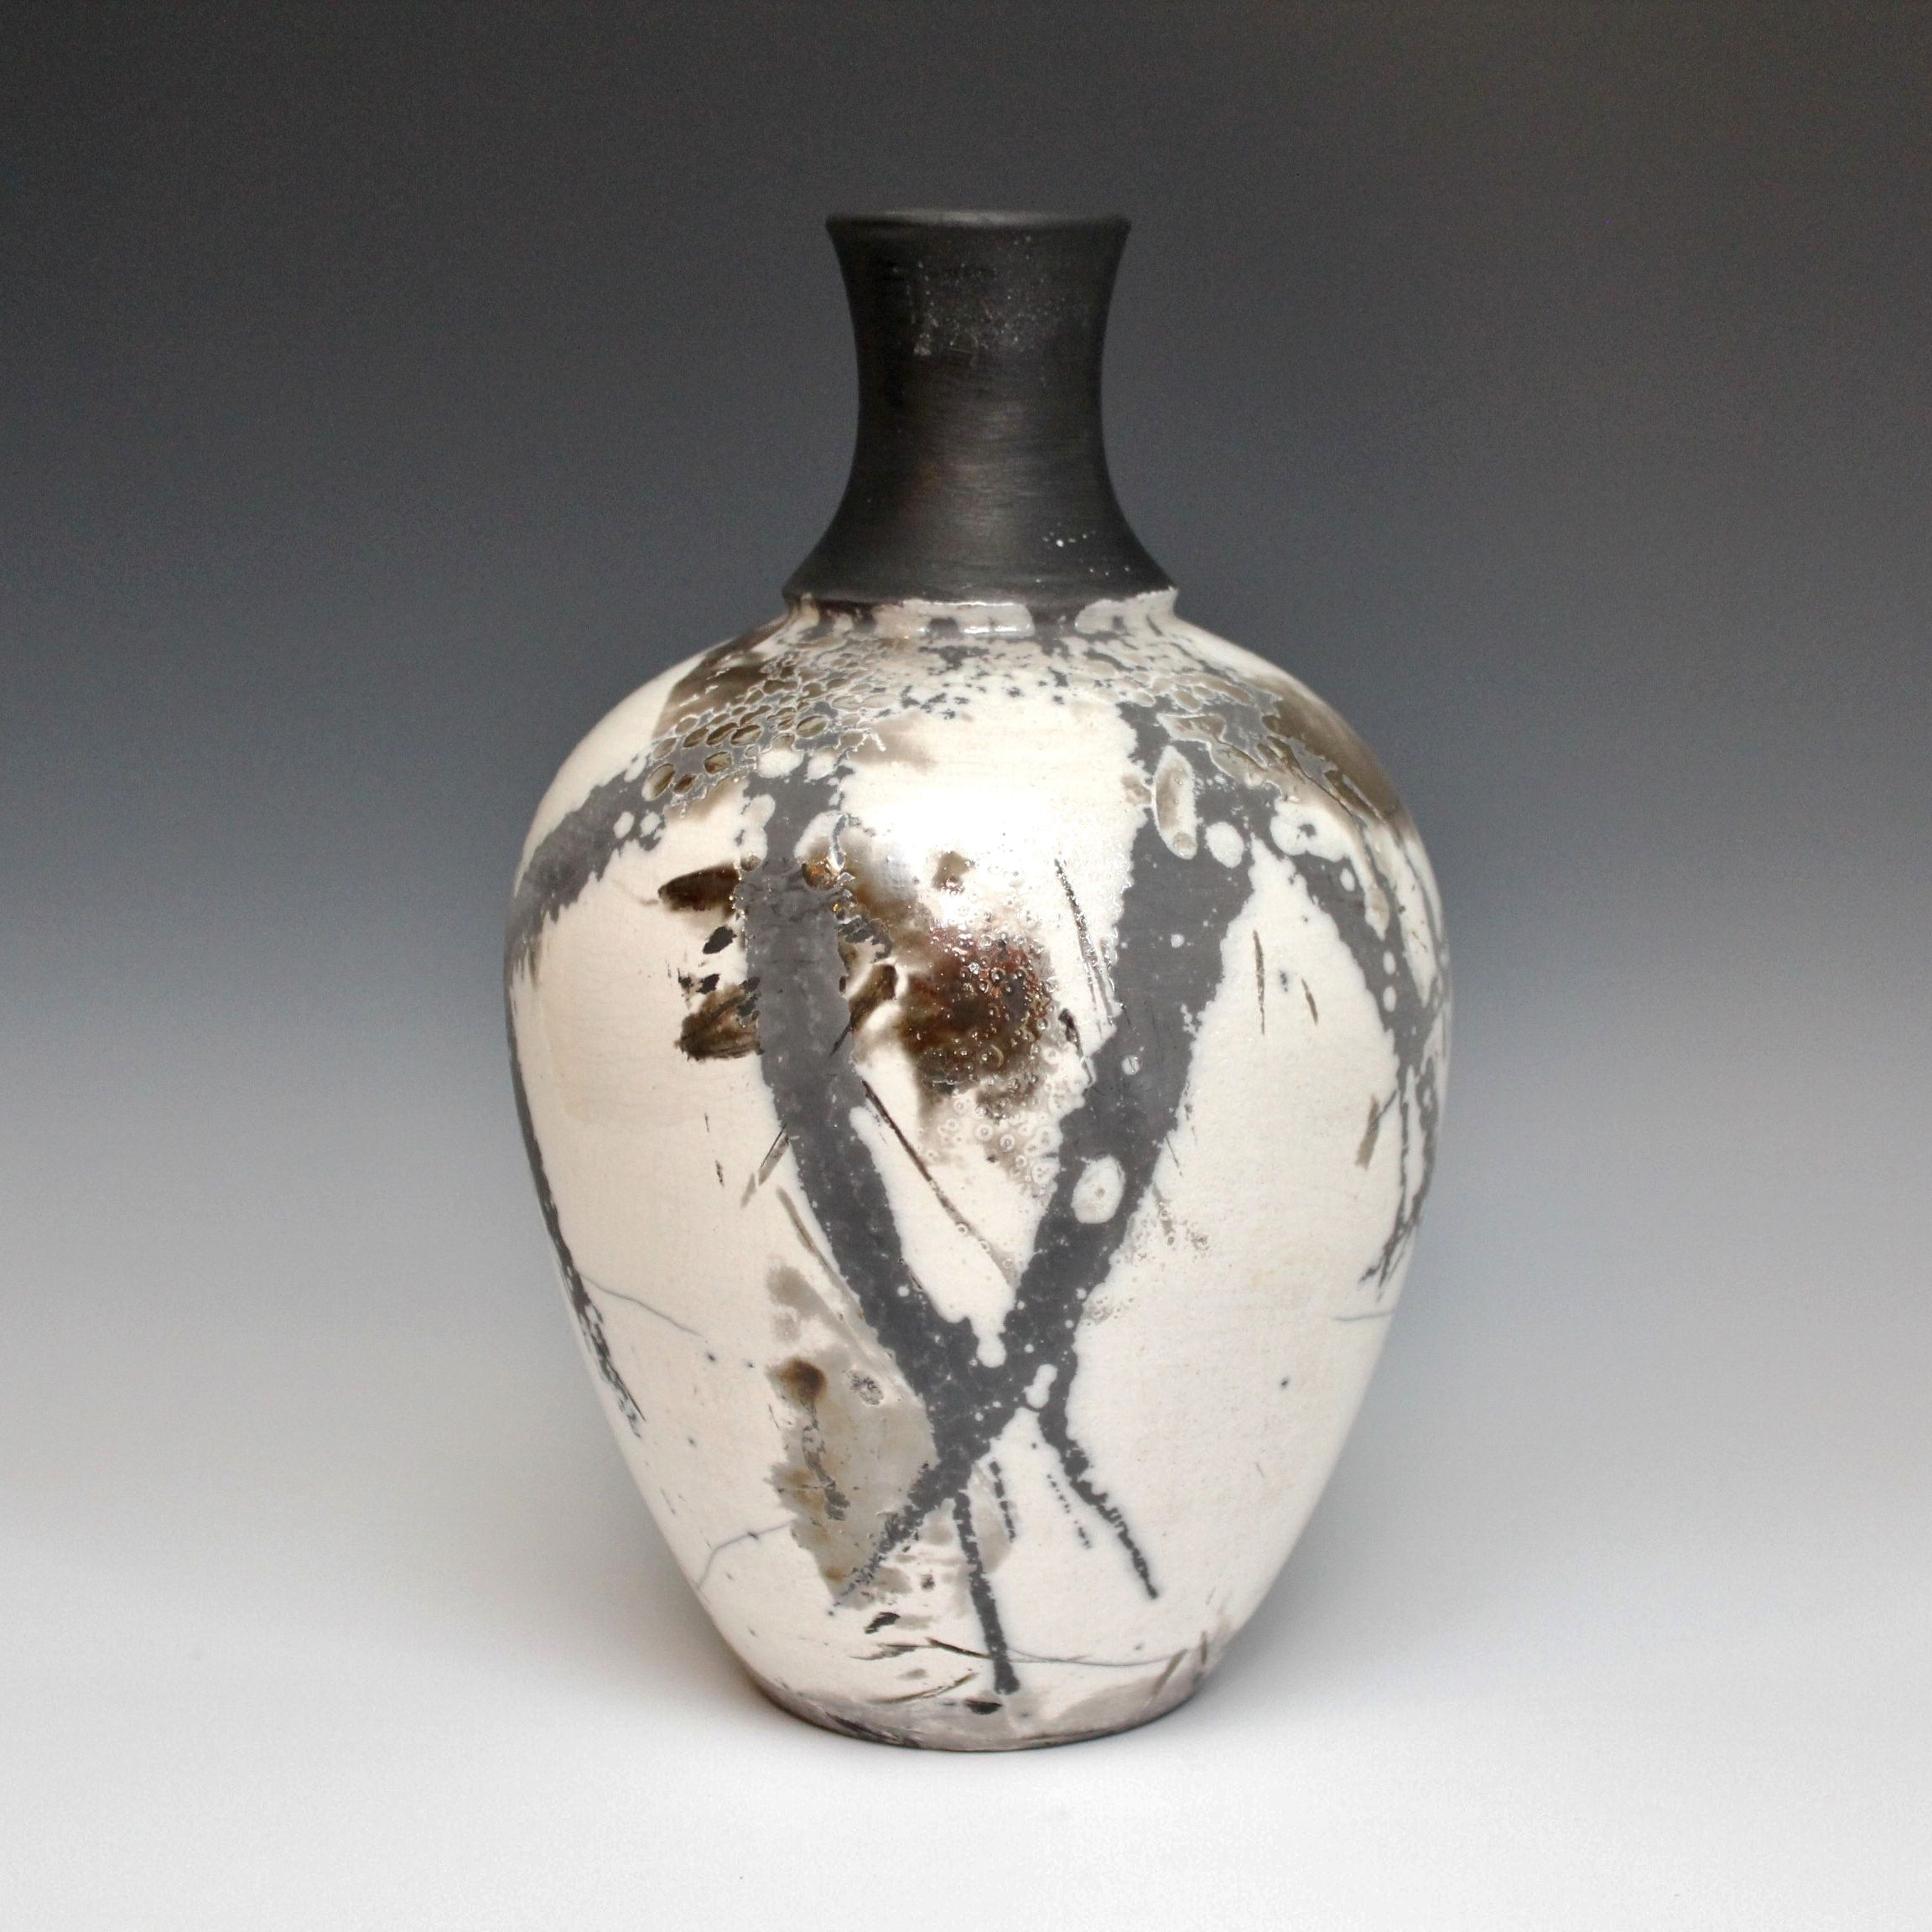 Raku Vase by Anthony Rollins http://stores.ebay.com/Anthonys-Antiques-and-Collectibles